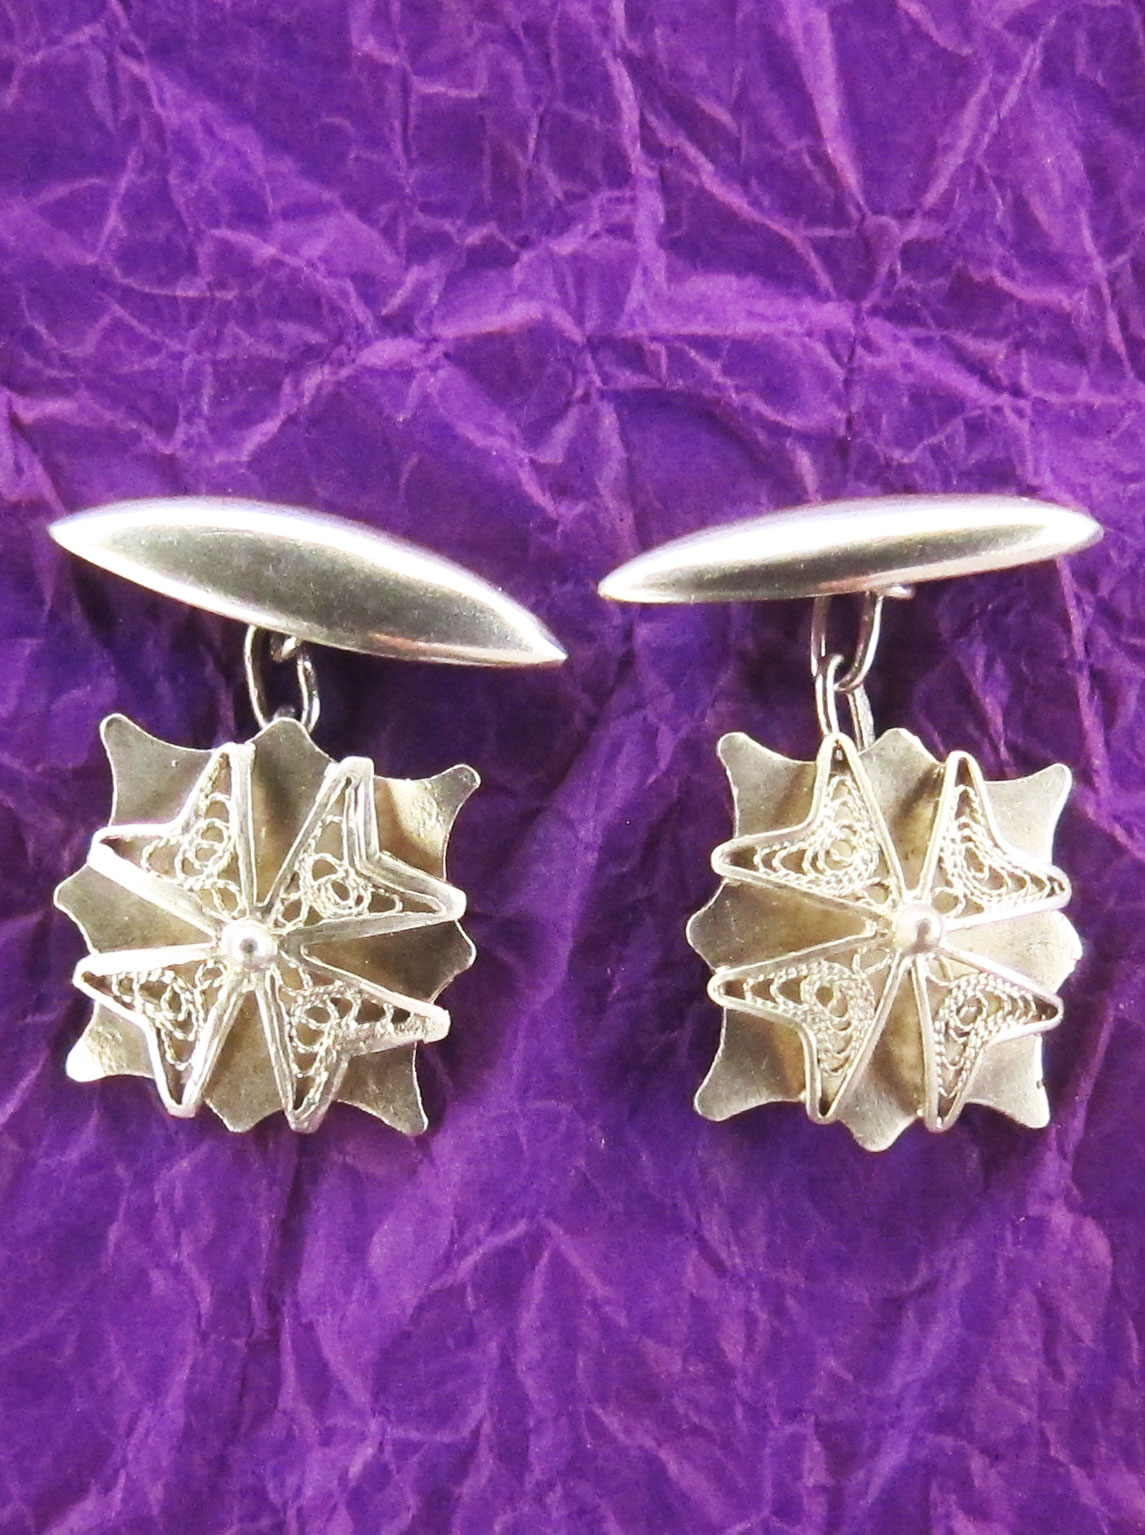 Cufflinks in silver with a Maltese cross